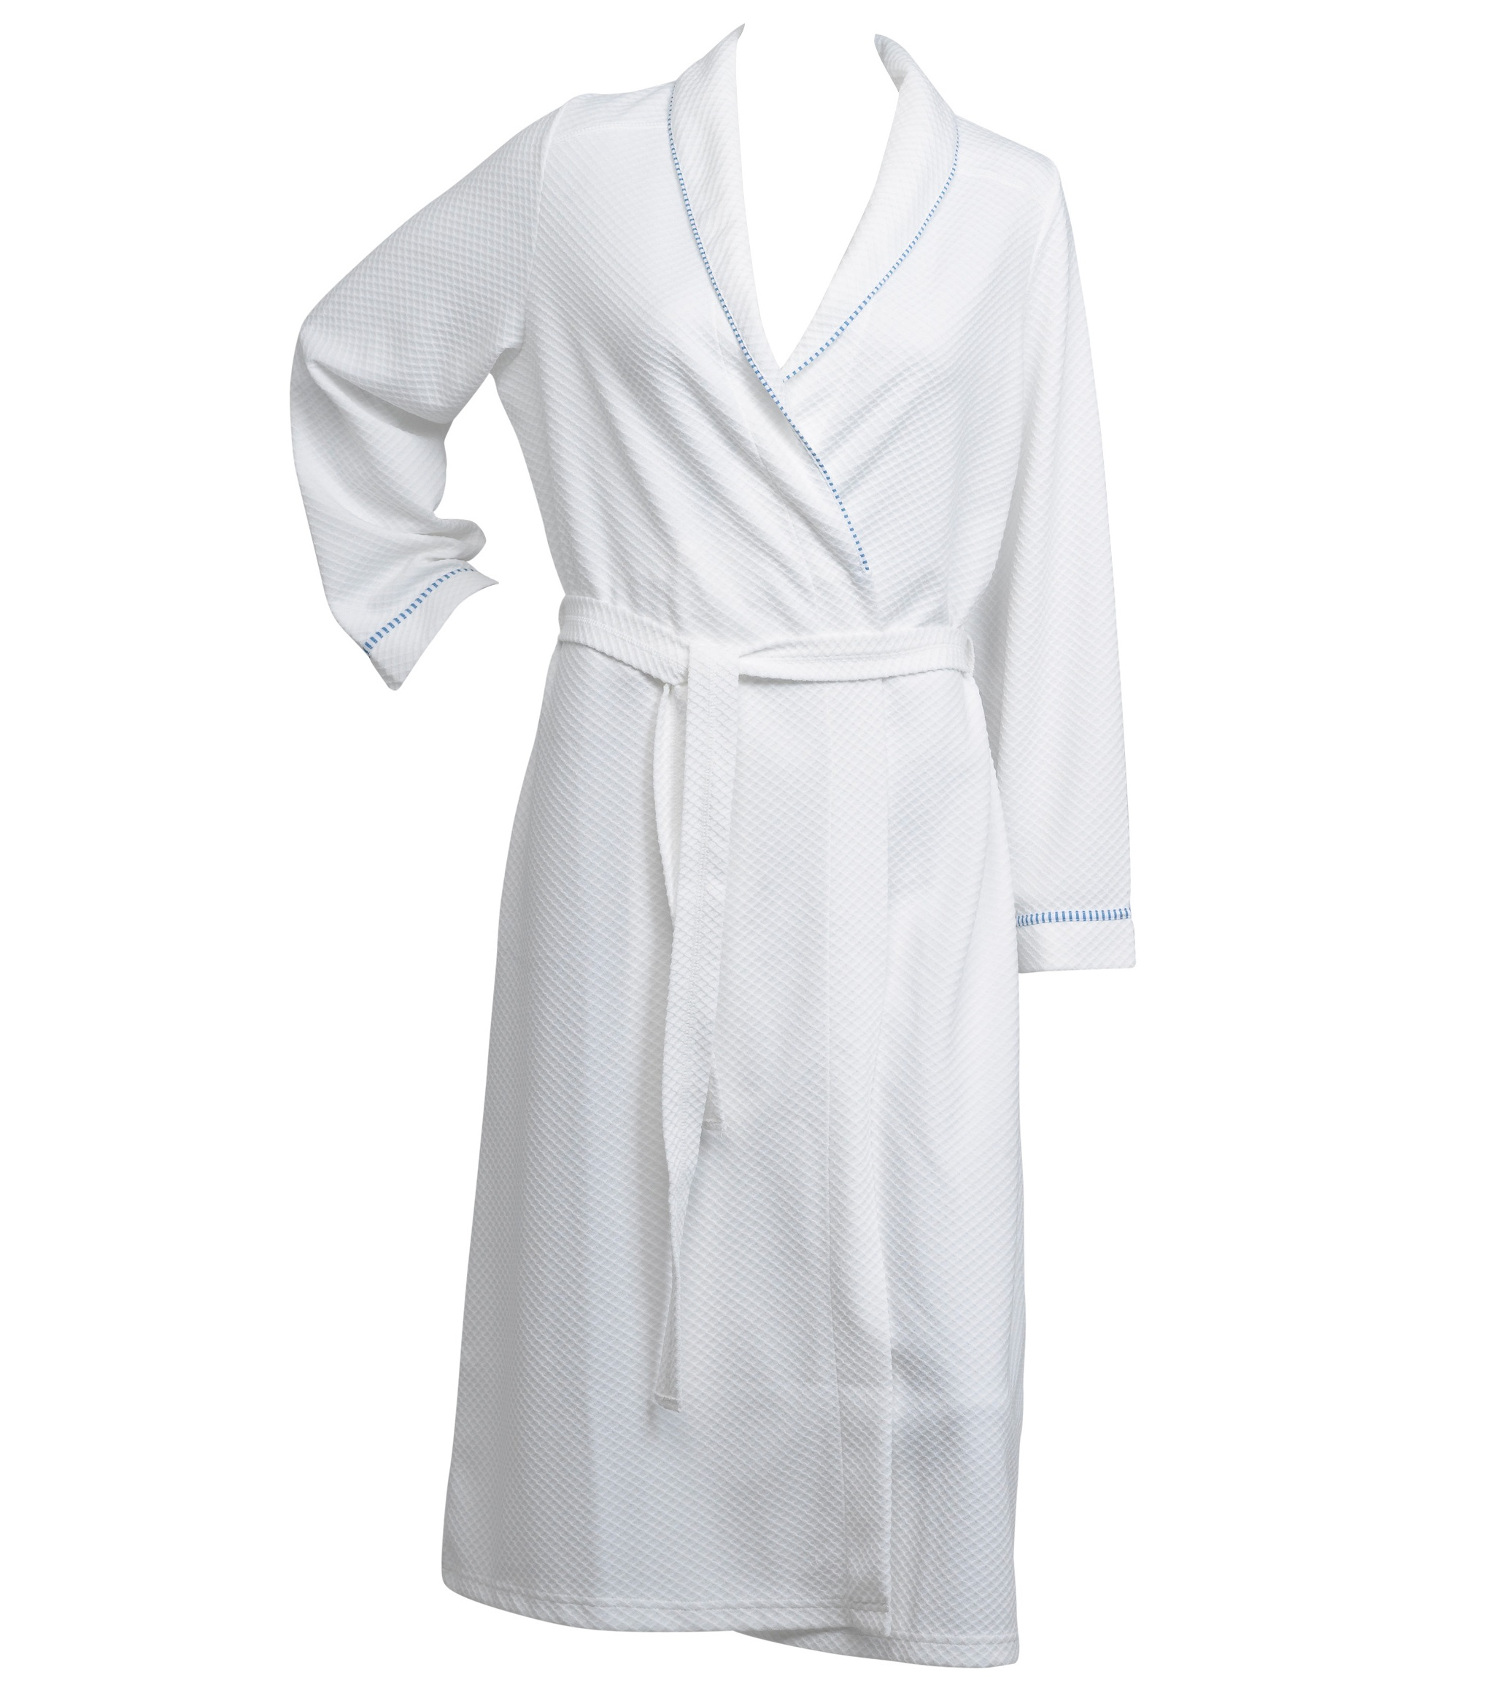 Ladies Lightweight Dressing Gowns - Home Decorating Ideas & Interior ...